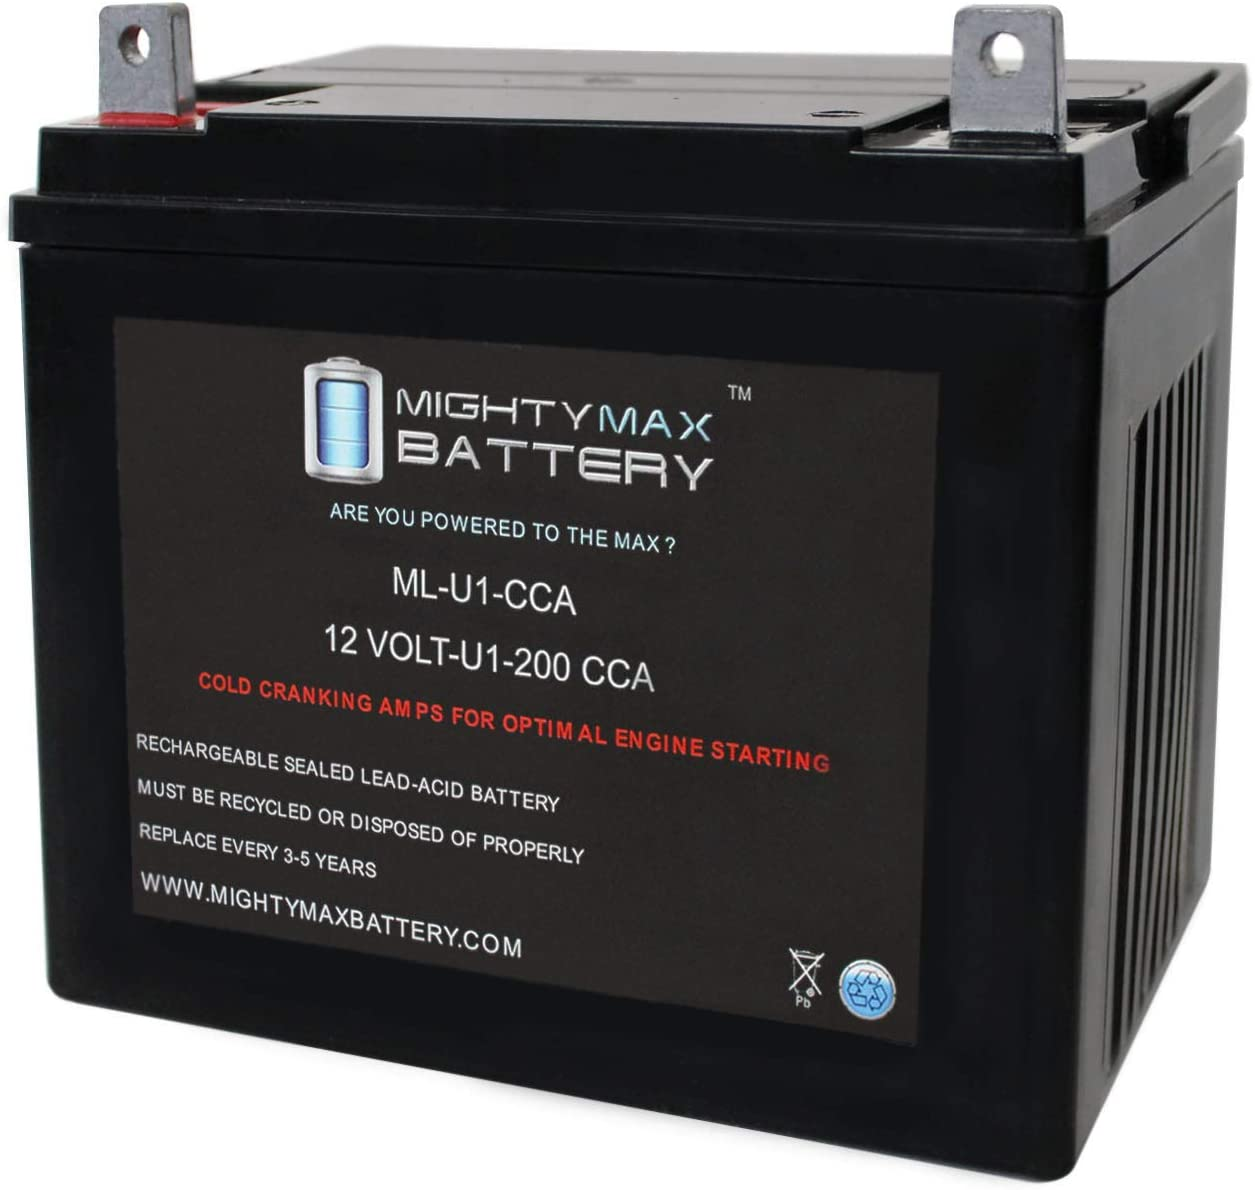 Mighty Max Battery ML-U1 12V 200CCA Battery Best Lawn Mower Battery